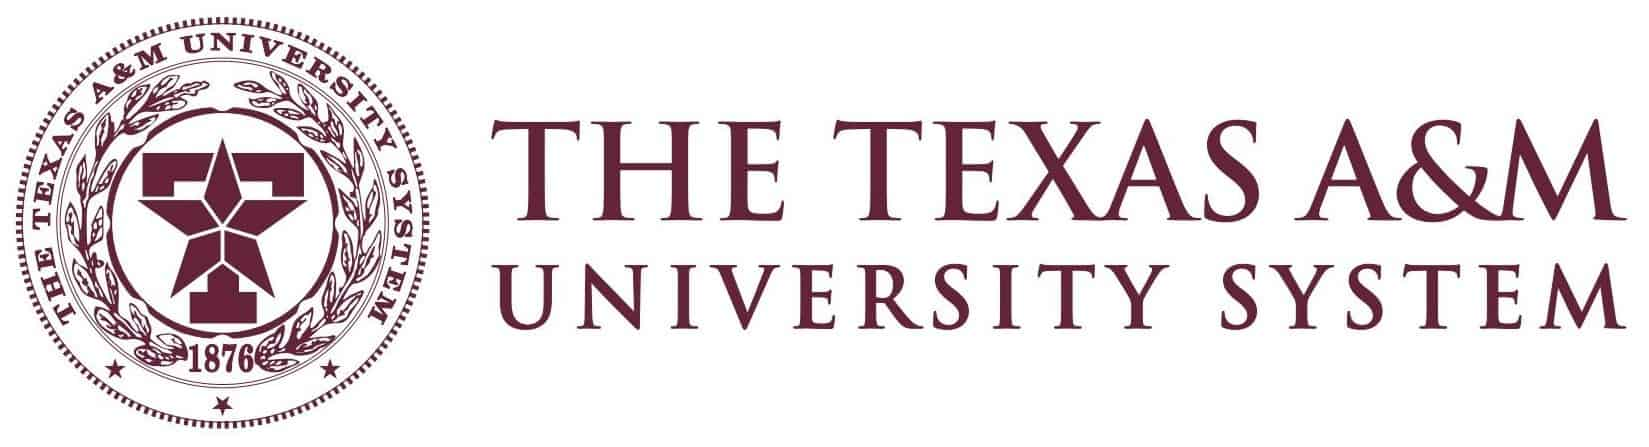 Texas AM University System Logo